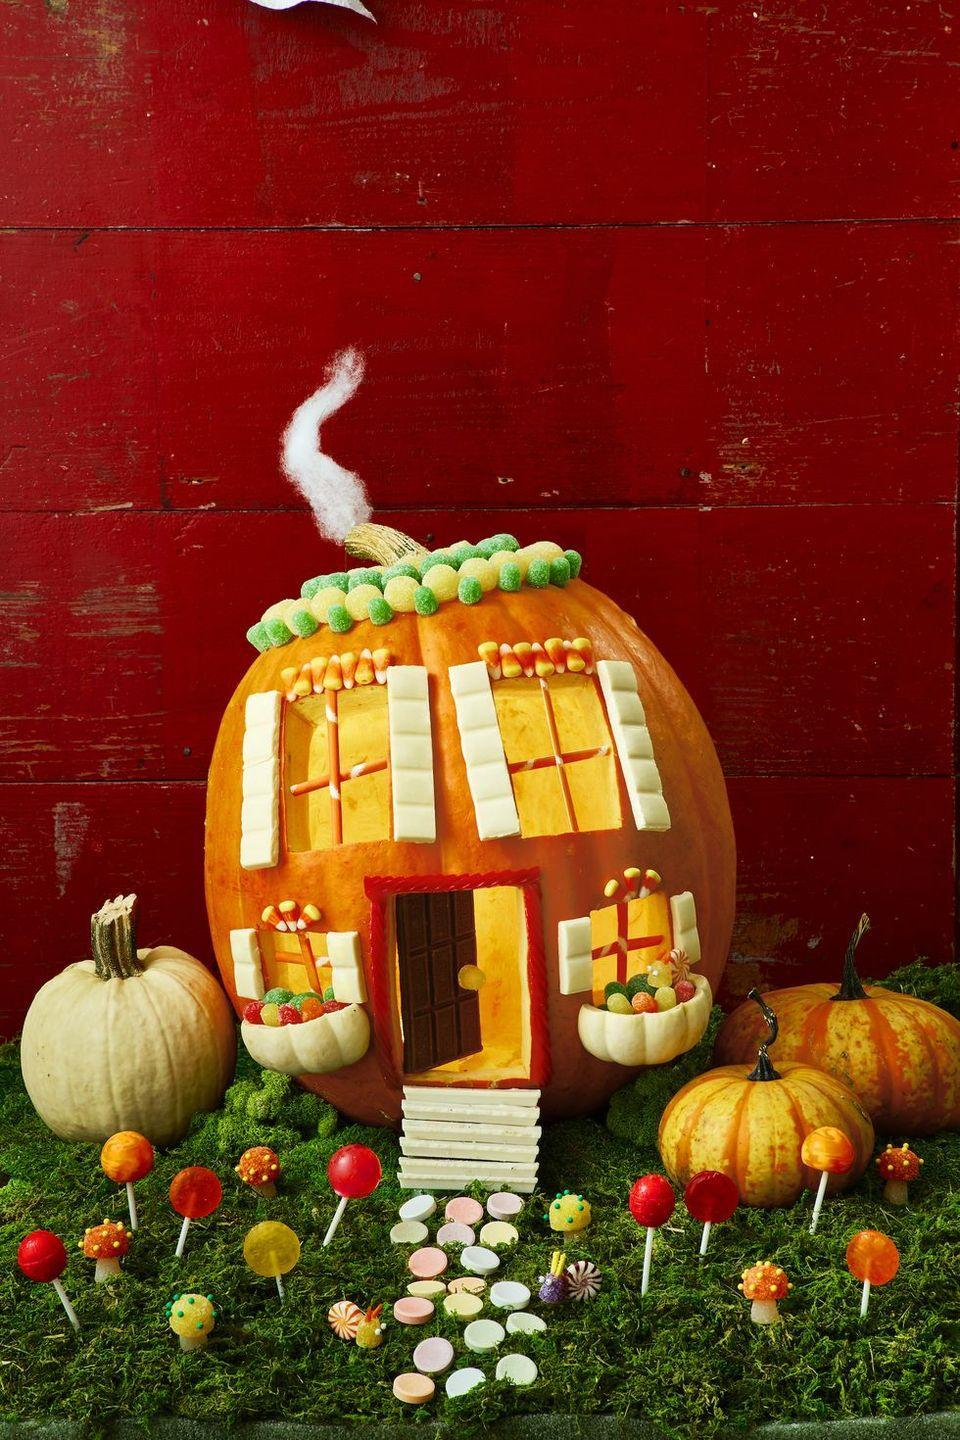 """<p>If there's anything that's a must-do activity for fall, it's carving some pumpkins. Get creative with the best <a href=""""https://www.goodhousekeeping.com/holidays/halloween-ideas/g238/pumpkin-carving-ideas/"""" rel=""""nofollow noopener"""" target=""""_blank"""" data-ylk=""""slk:pumpkin carving ideas"""" class=""""link rapid-noclick-resp"""">pumpkin carving ideas</a> — like this super-fun """"candy land"""" pumpkin dressed up with everything from gum drops to candy corn.</p>"""